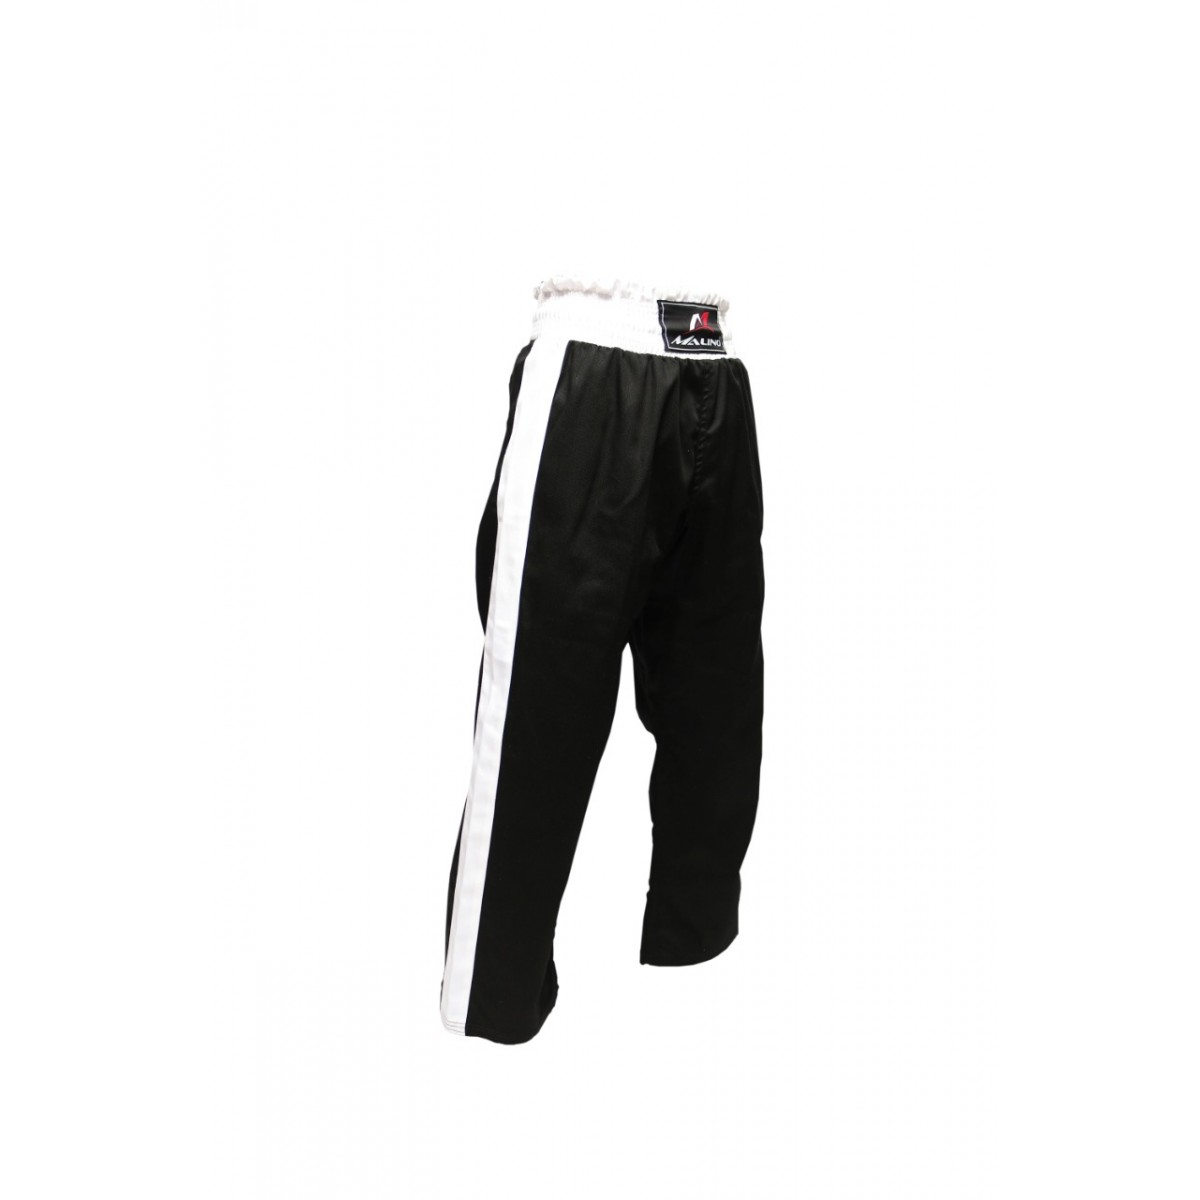 Malino Star Kickboxing Trouser Mix Martial Arts Training Poly Cotton Trouser Black White